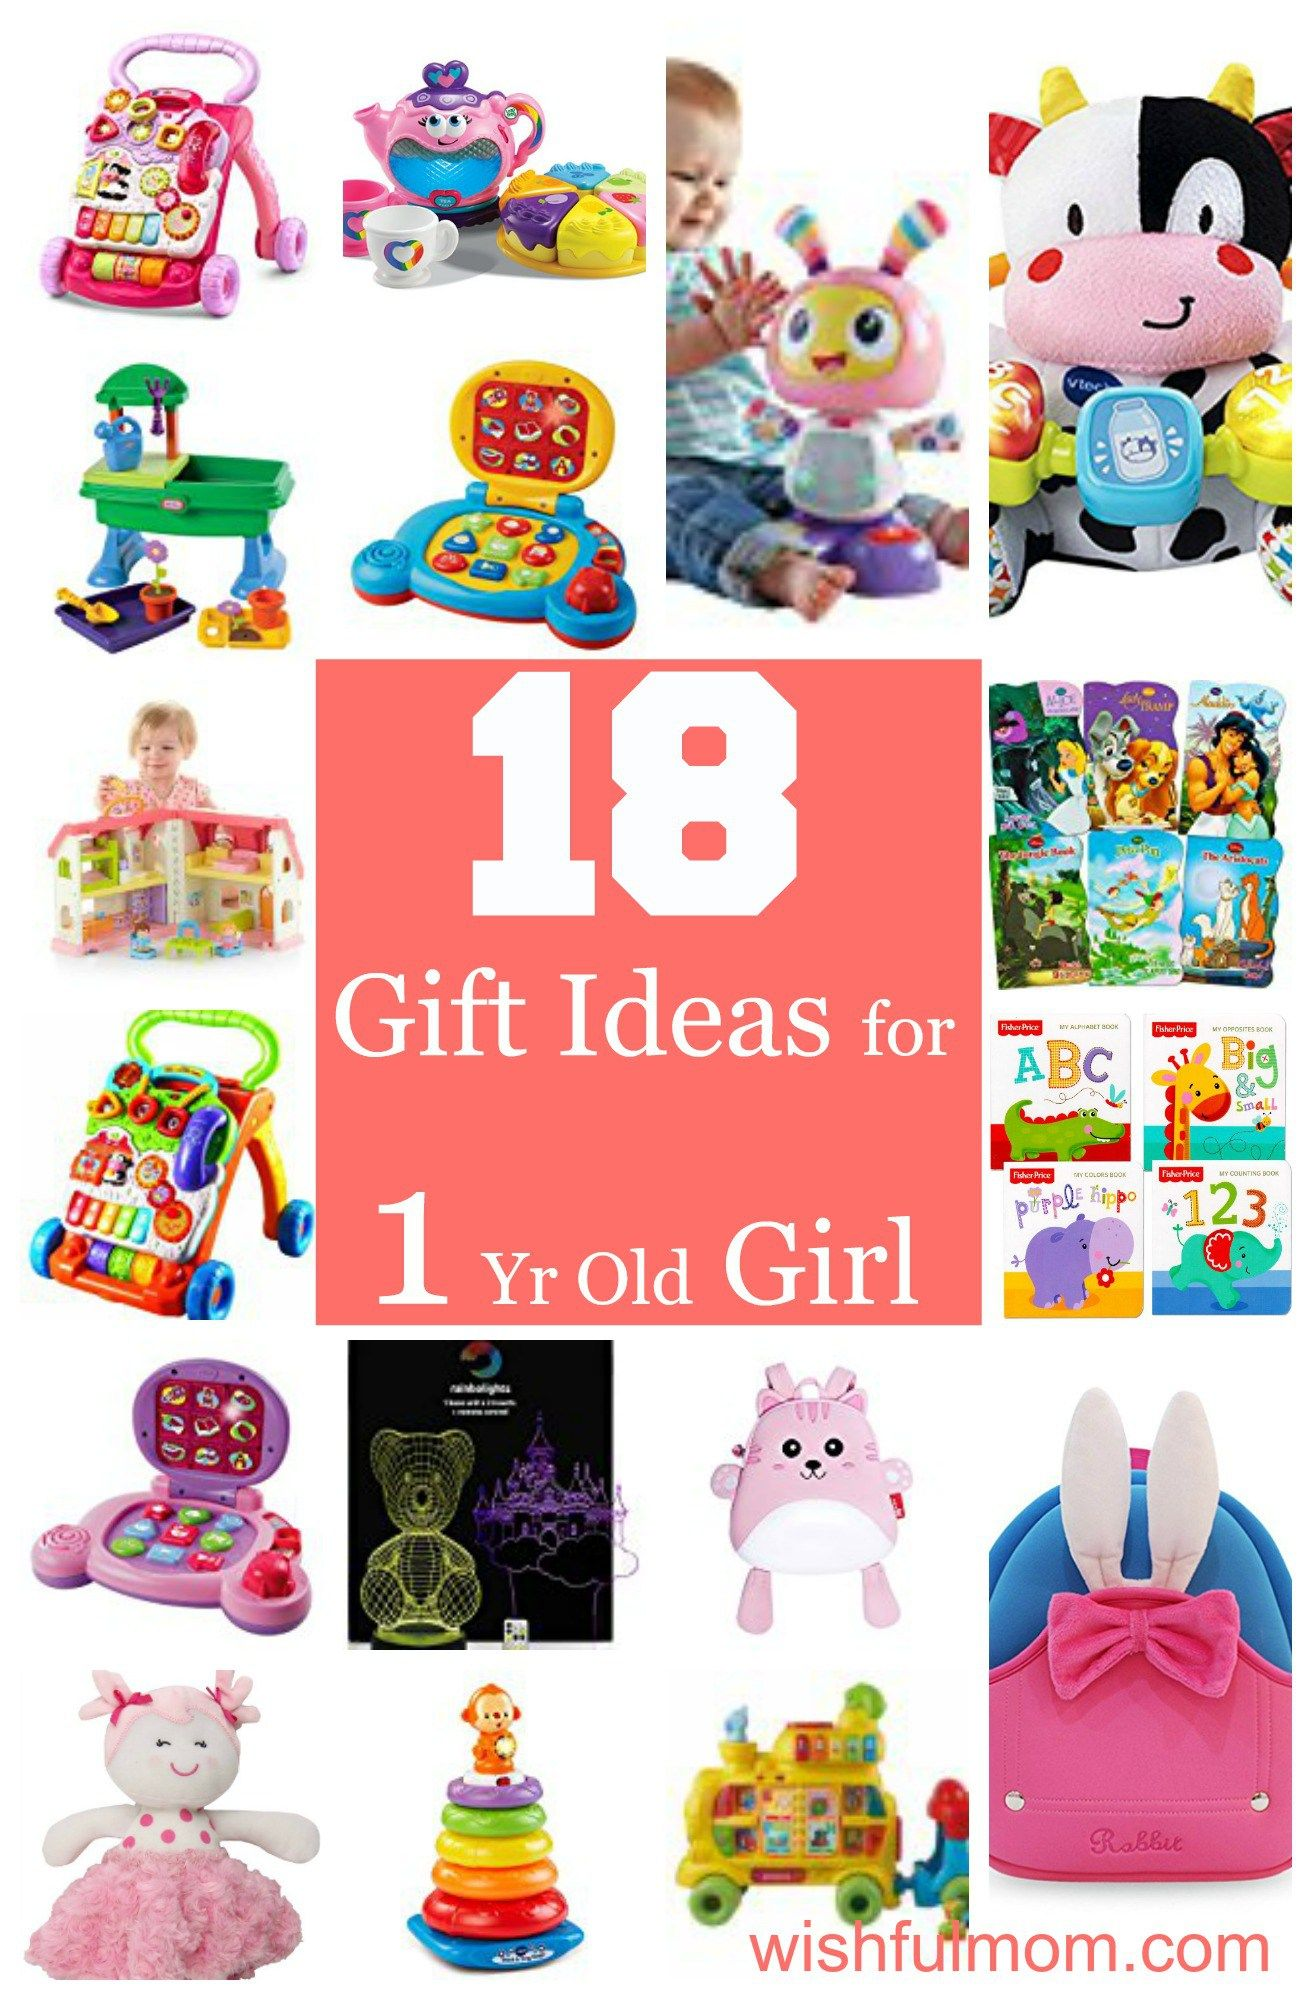 Gift Ideas For 1 Year Old Girl  Examples And Forms-5231